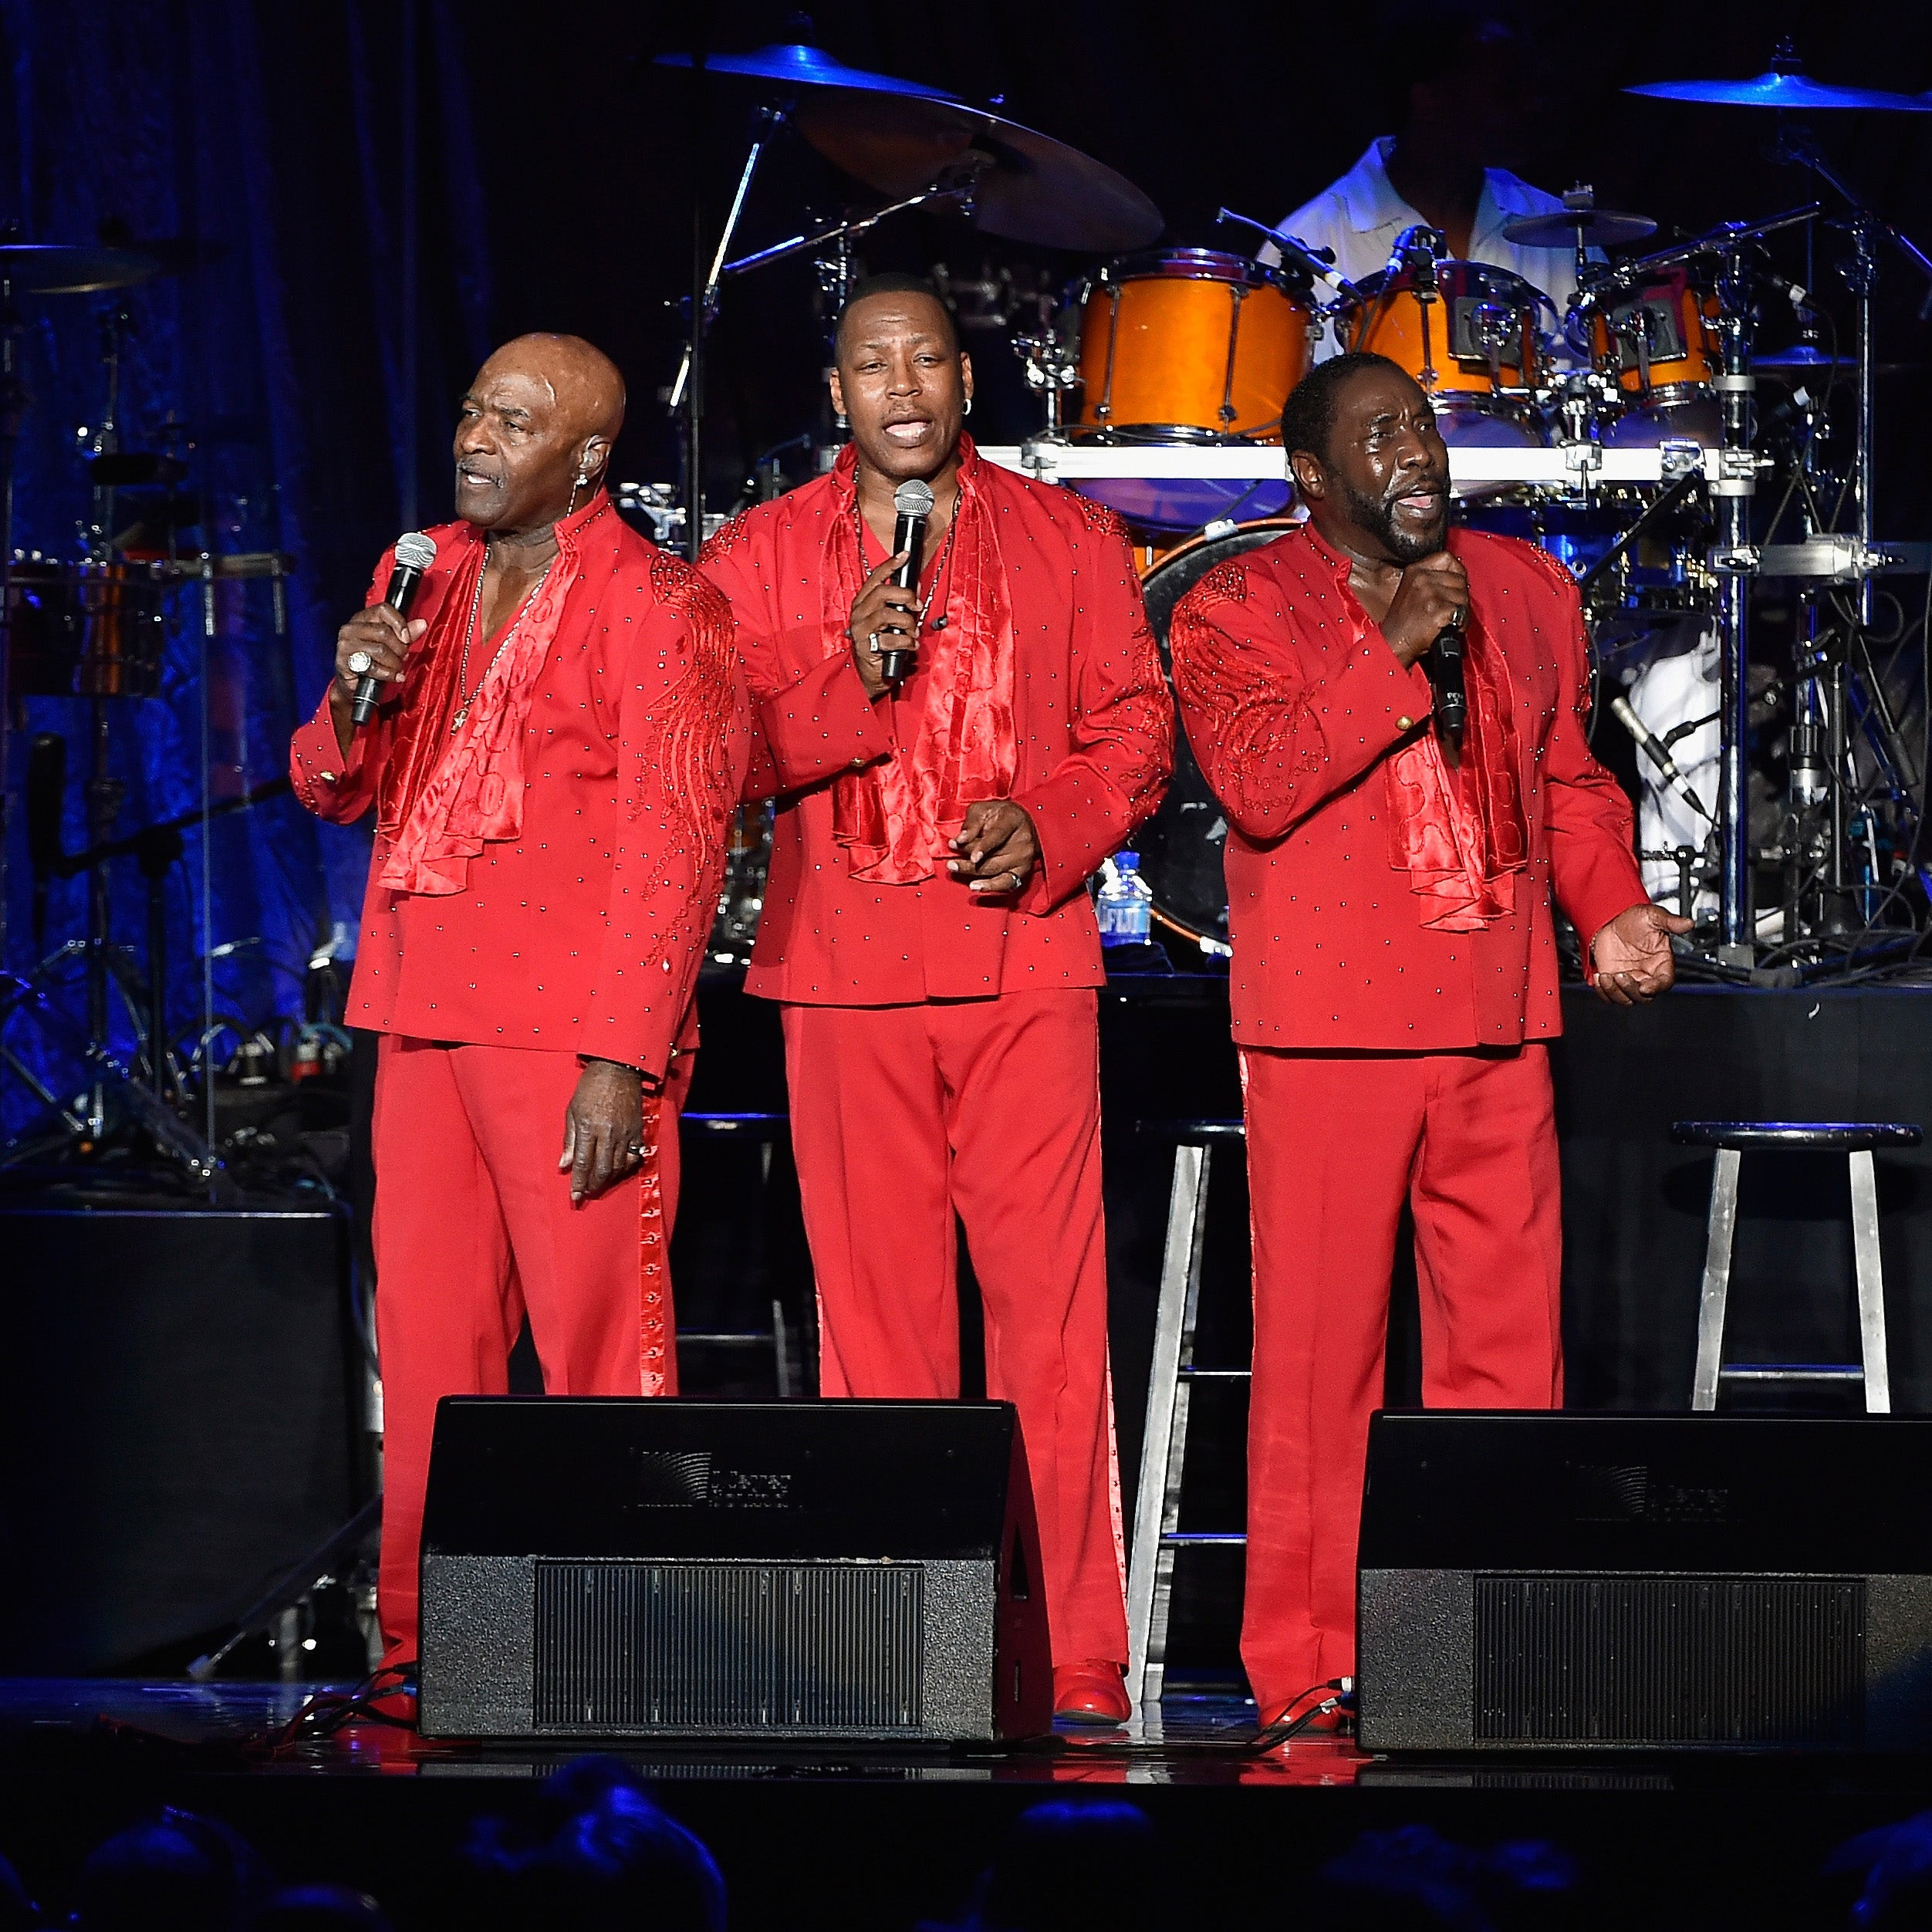 The O'Jays Gives Advice For The New Generation Of Musicians, Calls Some Trends 'Buffoonery'